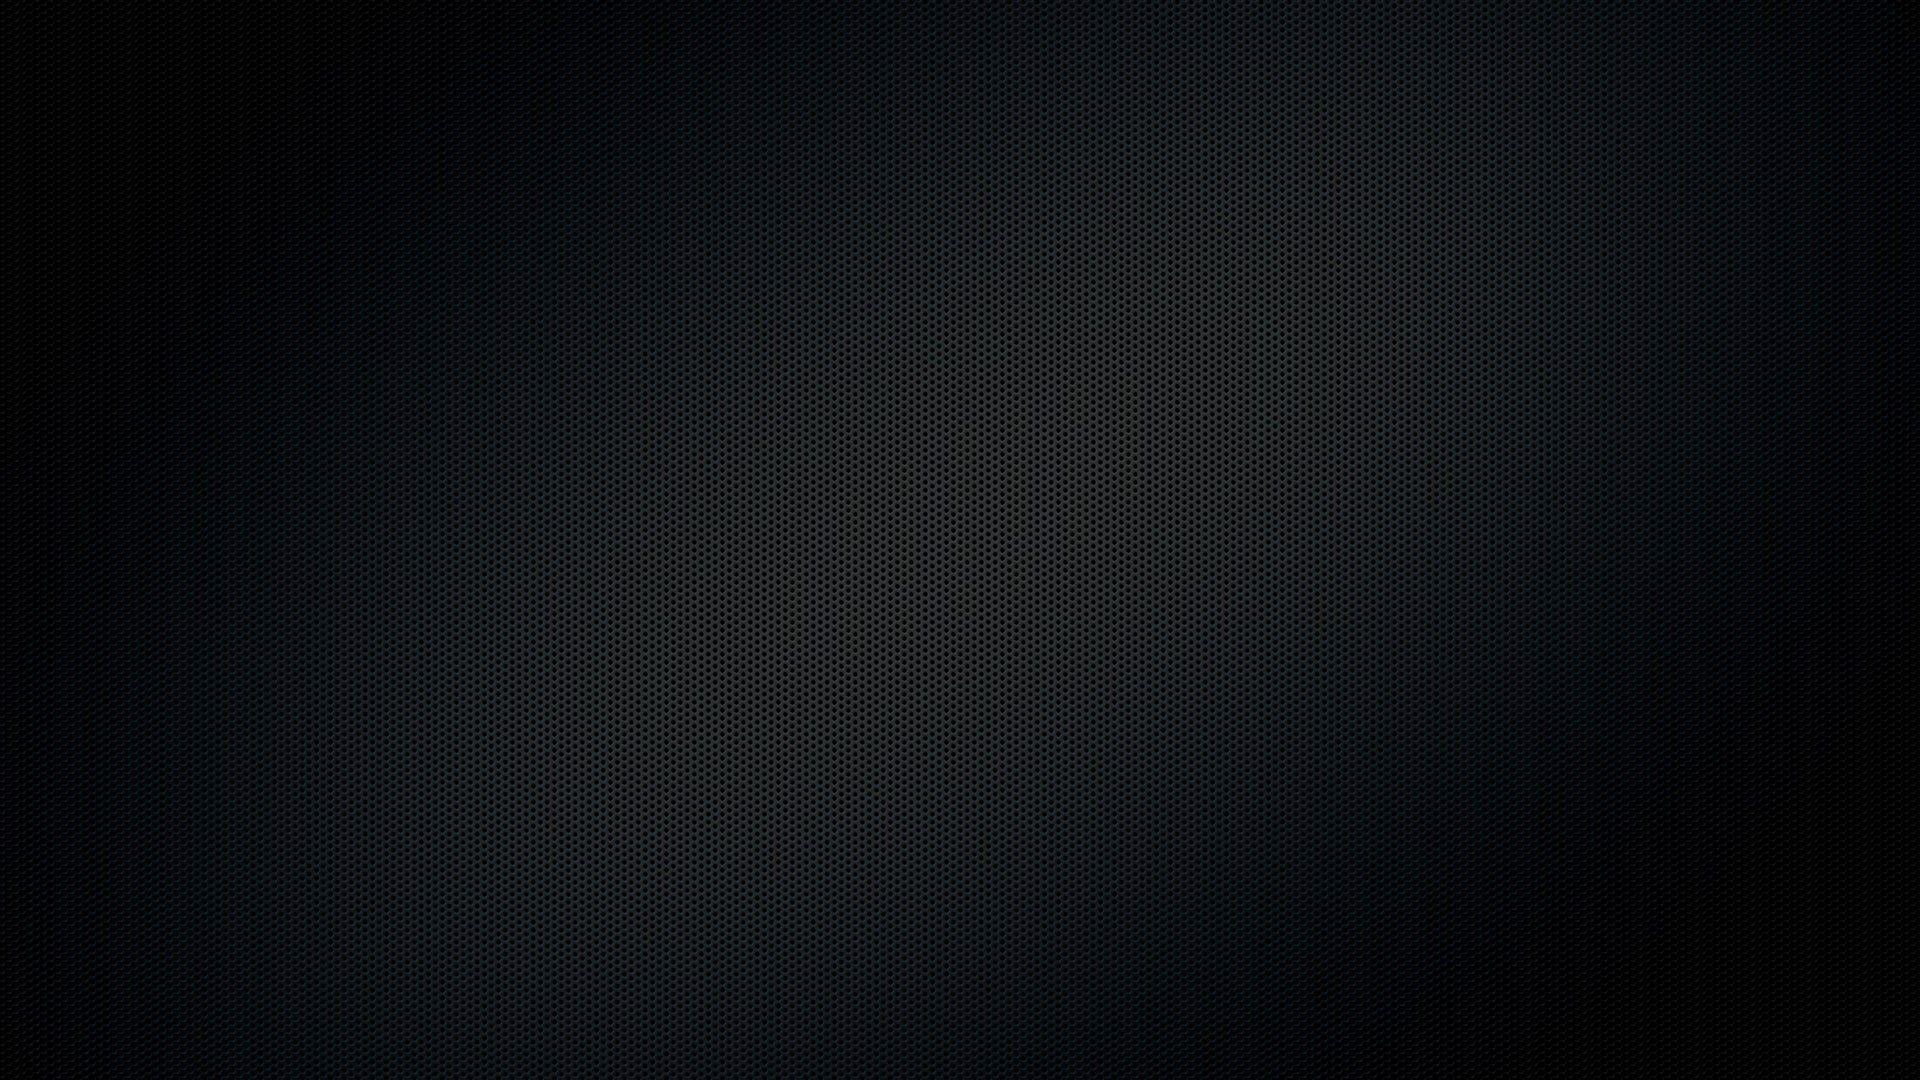 Black Hd Wallpapers Collection For Free Download